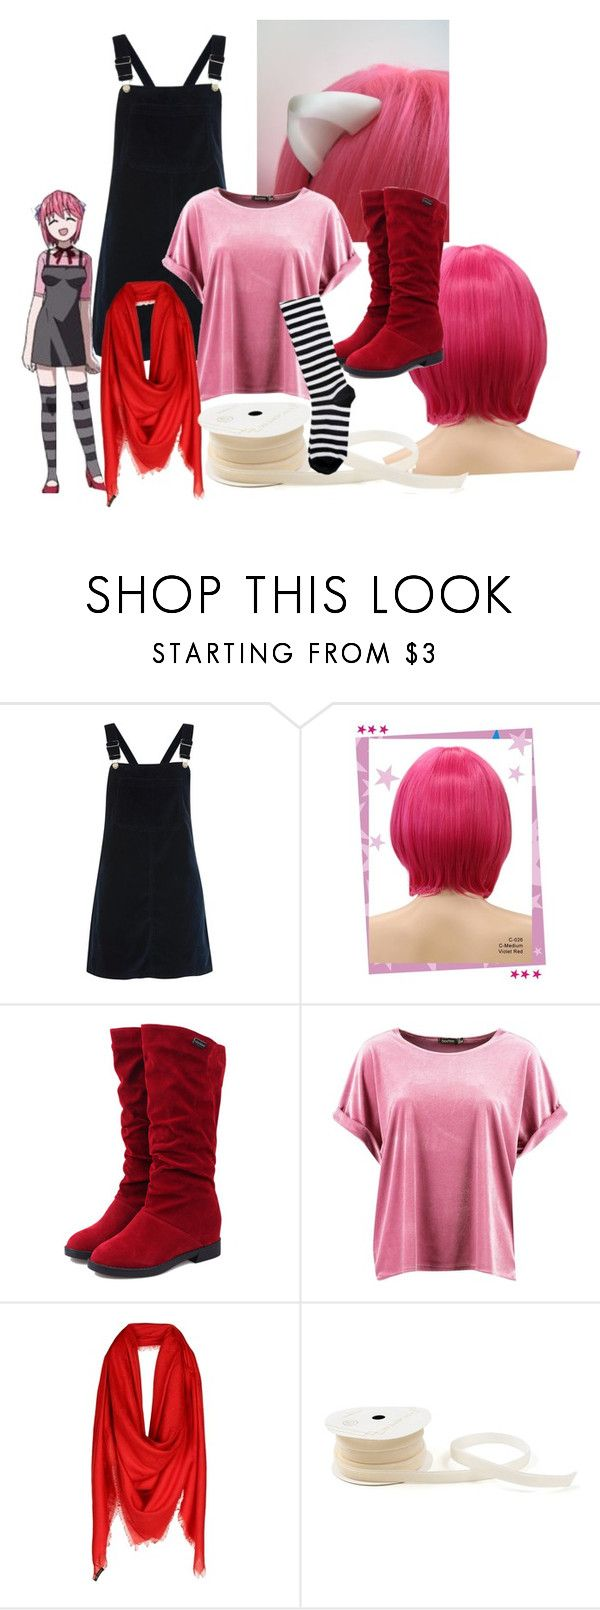 """Elfen Lied Lucy/Nyu"" by m289651 ❤ liked on Polyvore featuring Nana', Topshop, Wigs2You, Boohoo and Versace"